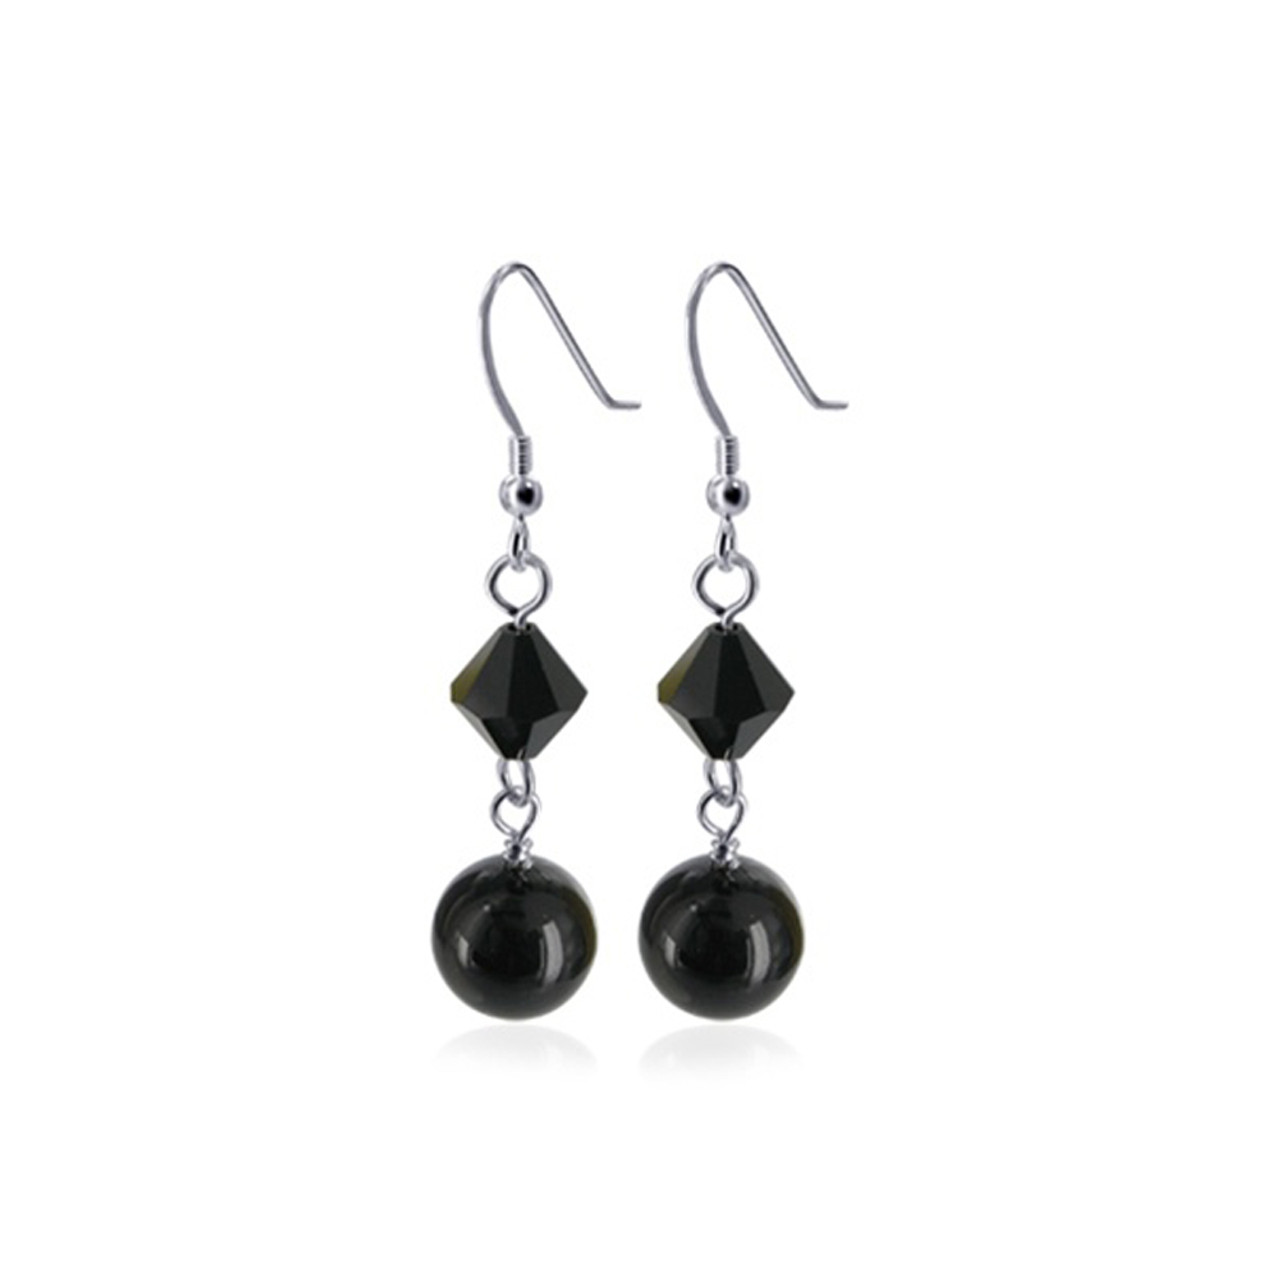 Black Faux Pearl Drop Earrings